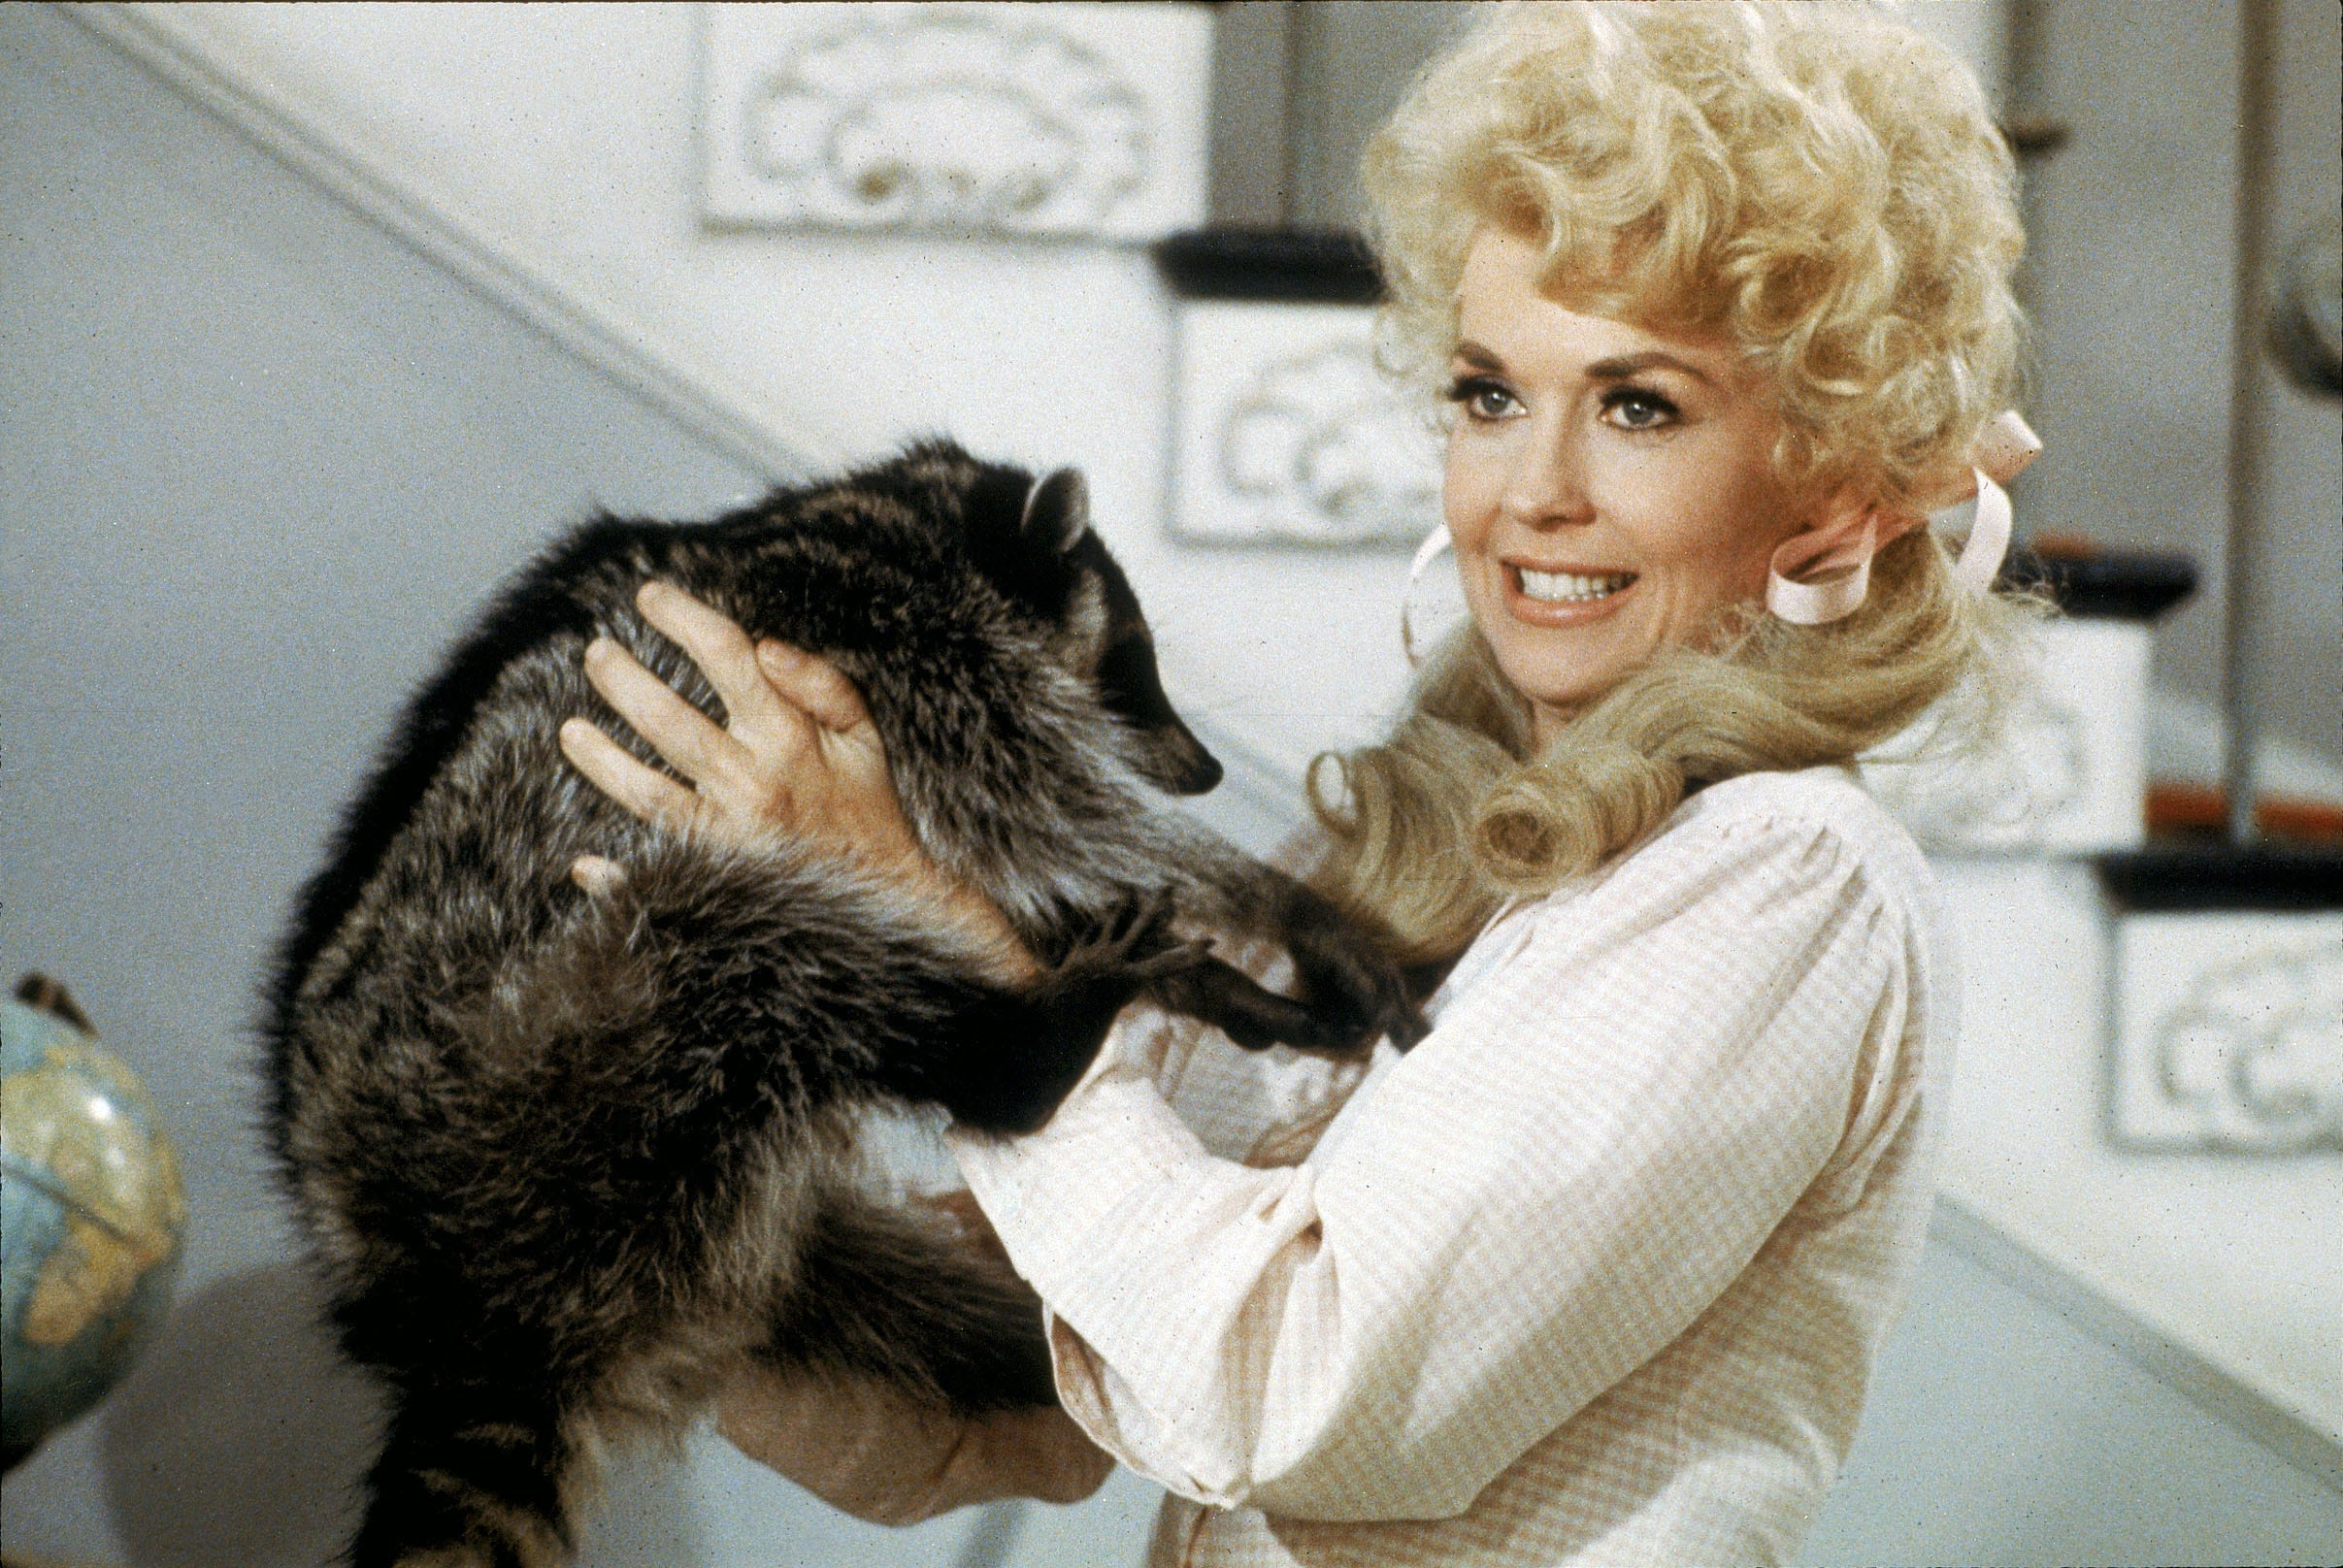 'Beverly Hillbillies' star Donna Douglas dies at 81